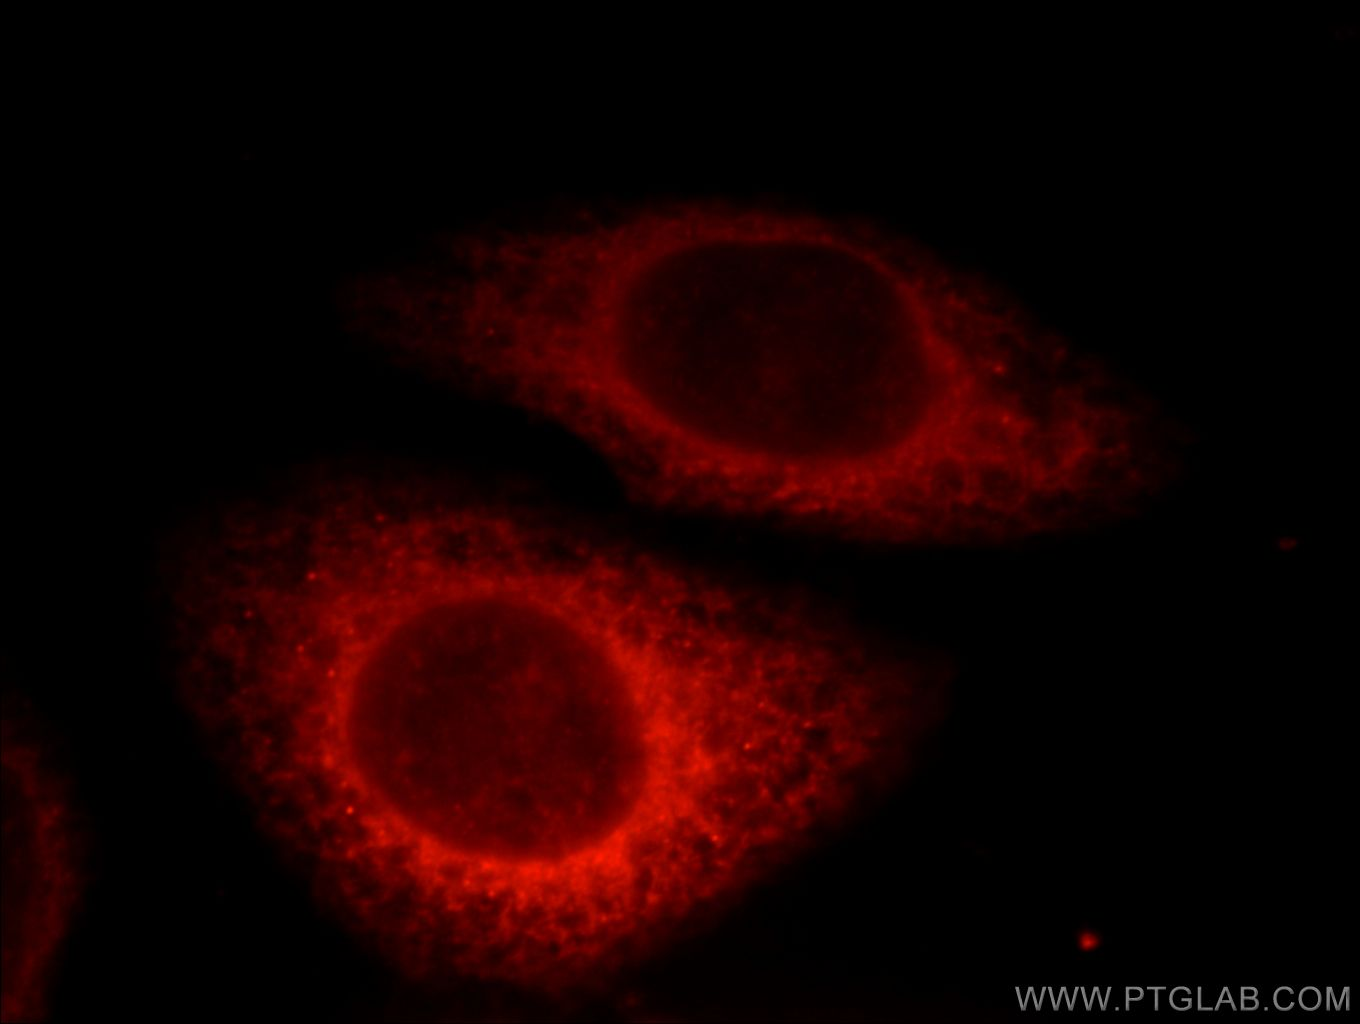 HSP90B1 Immunofluorescence IF 14700-1-AP HSP90B1 Antibody ECGP; GP96; GRP94; TRA1